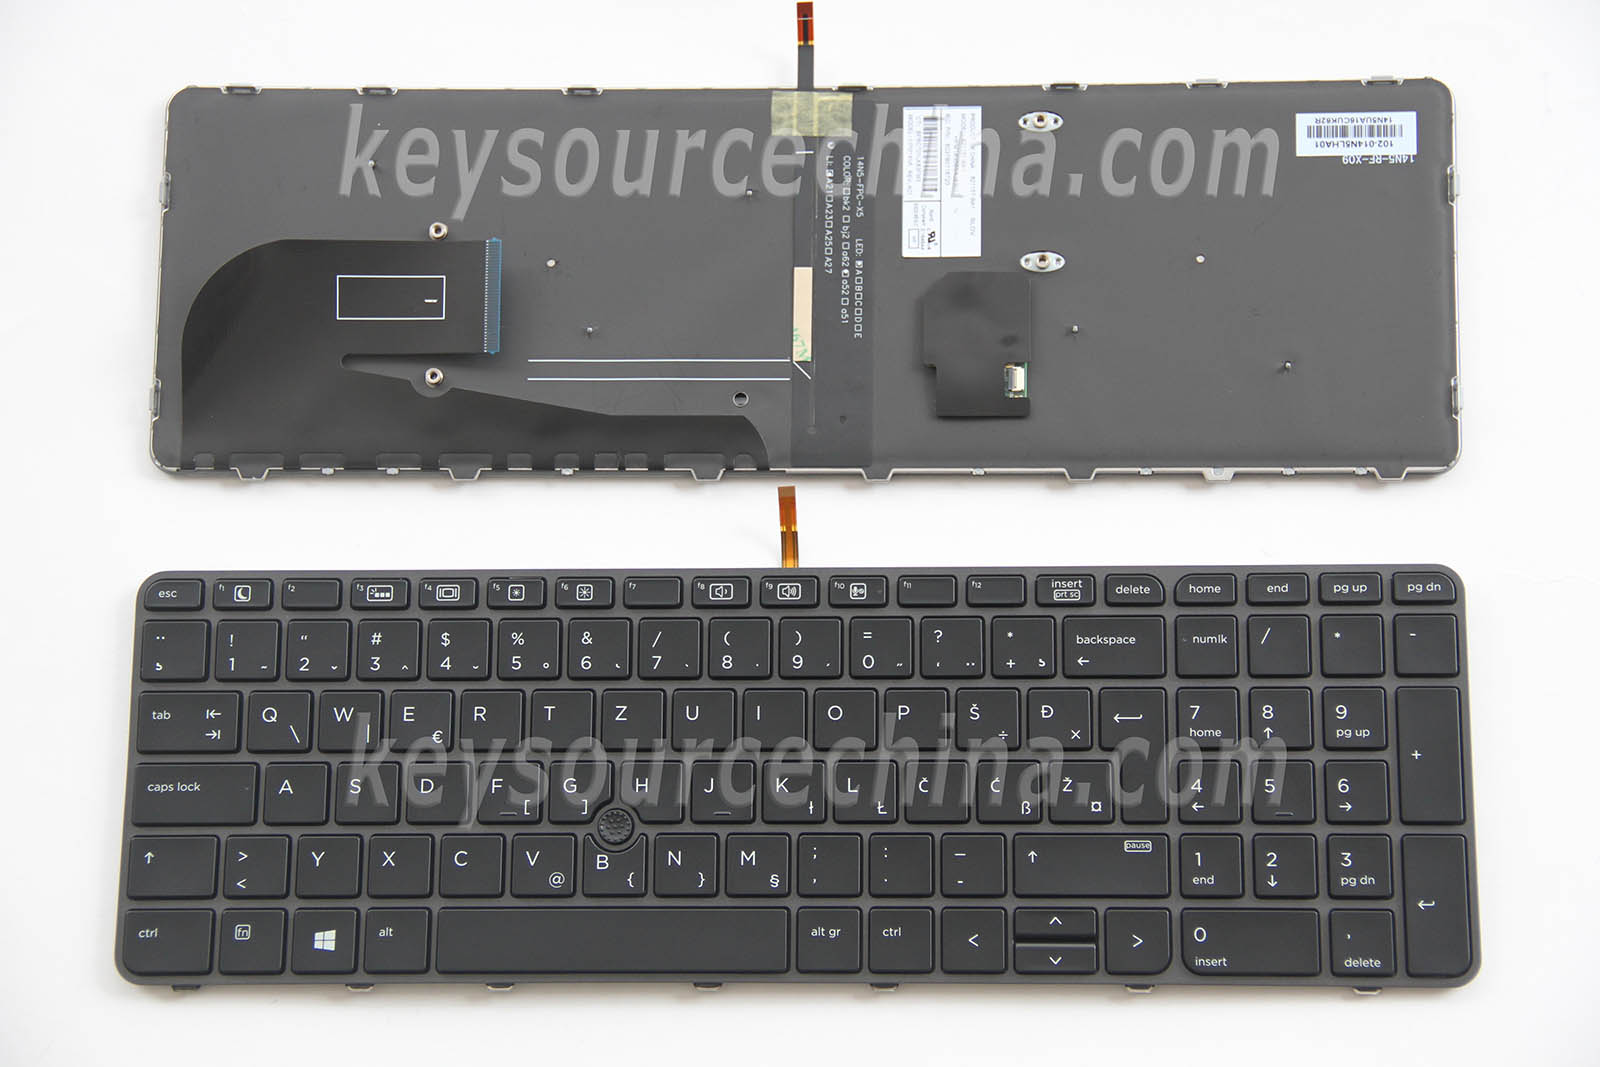 Slovenščina Tipkovnica za HP EliteBook 755 G3 850 G3 755 G4 850 G4 ZBook 15u G3 ZBook 15u G4 Slovenian Croatian Laptop Keyboard Backlit